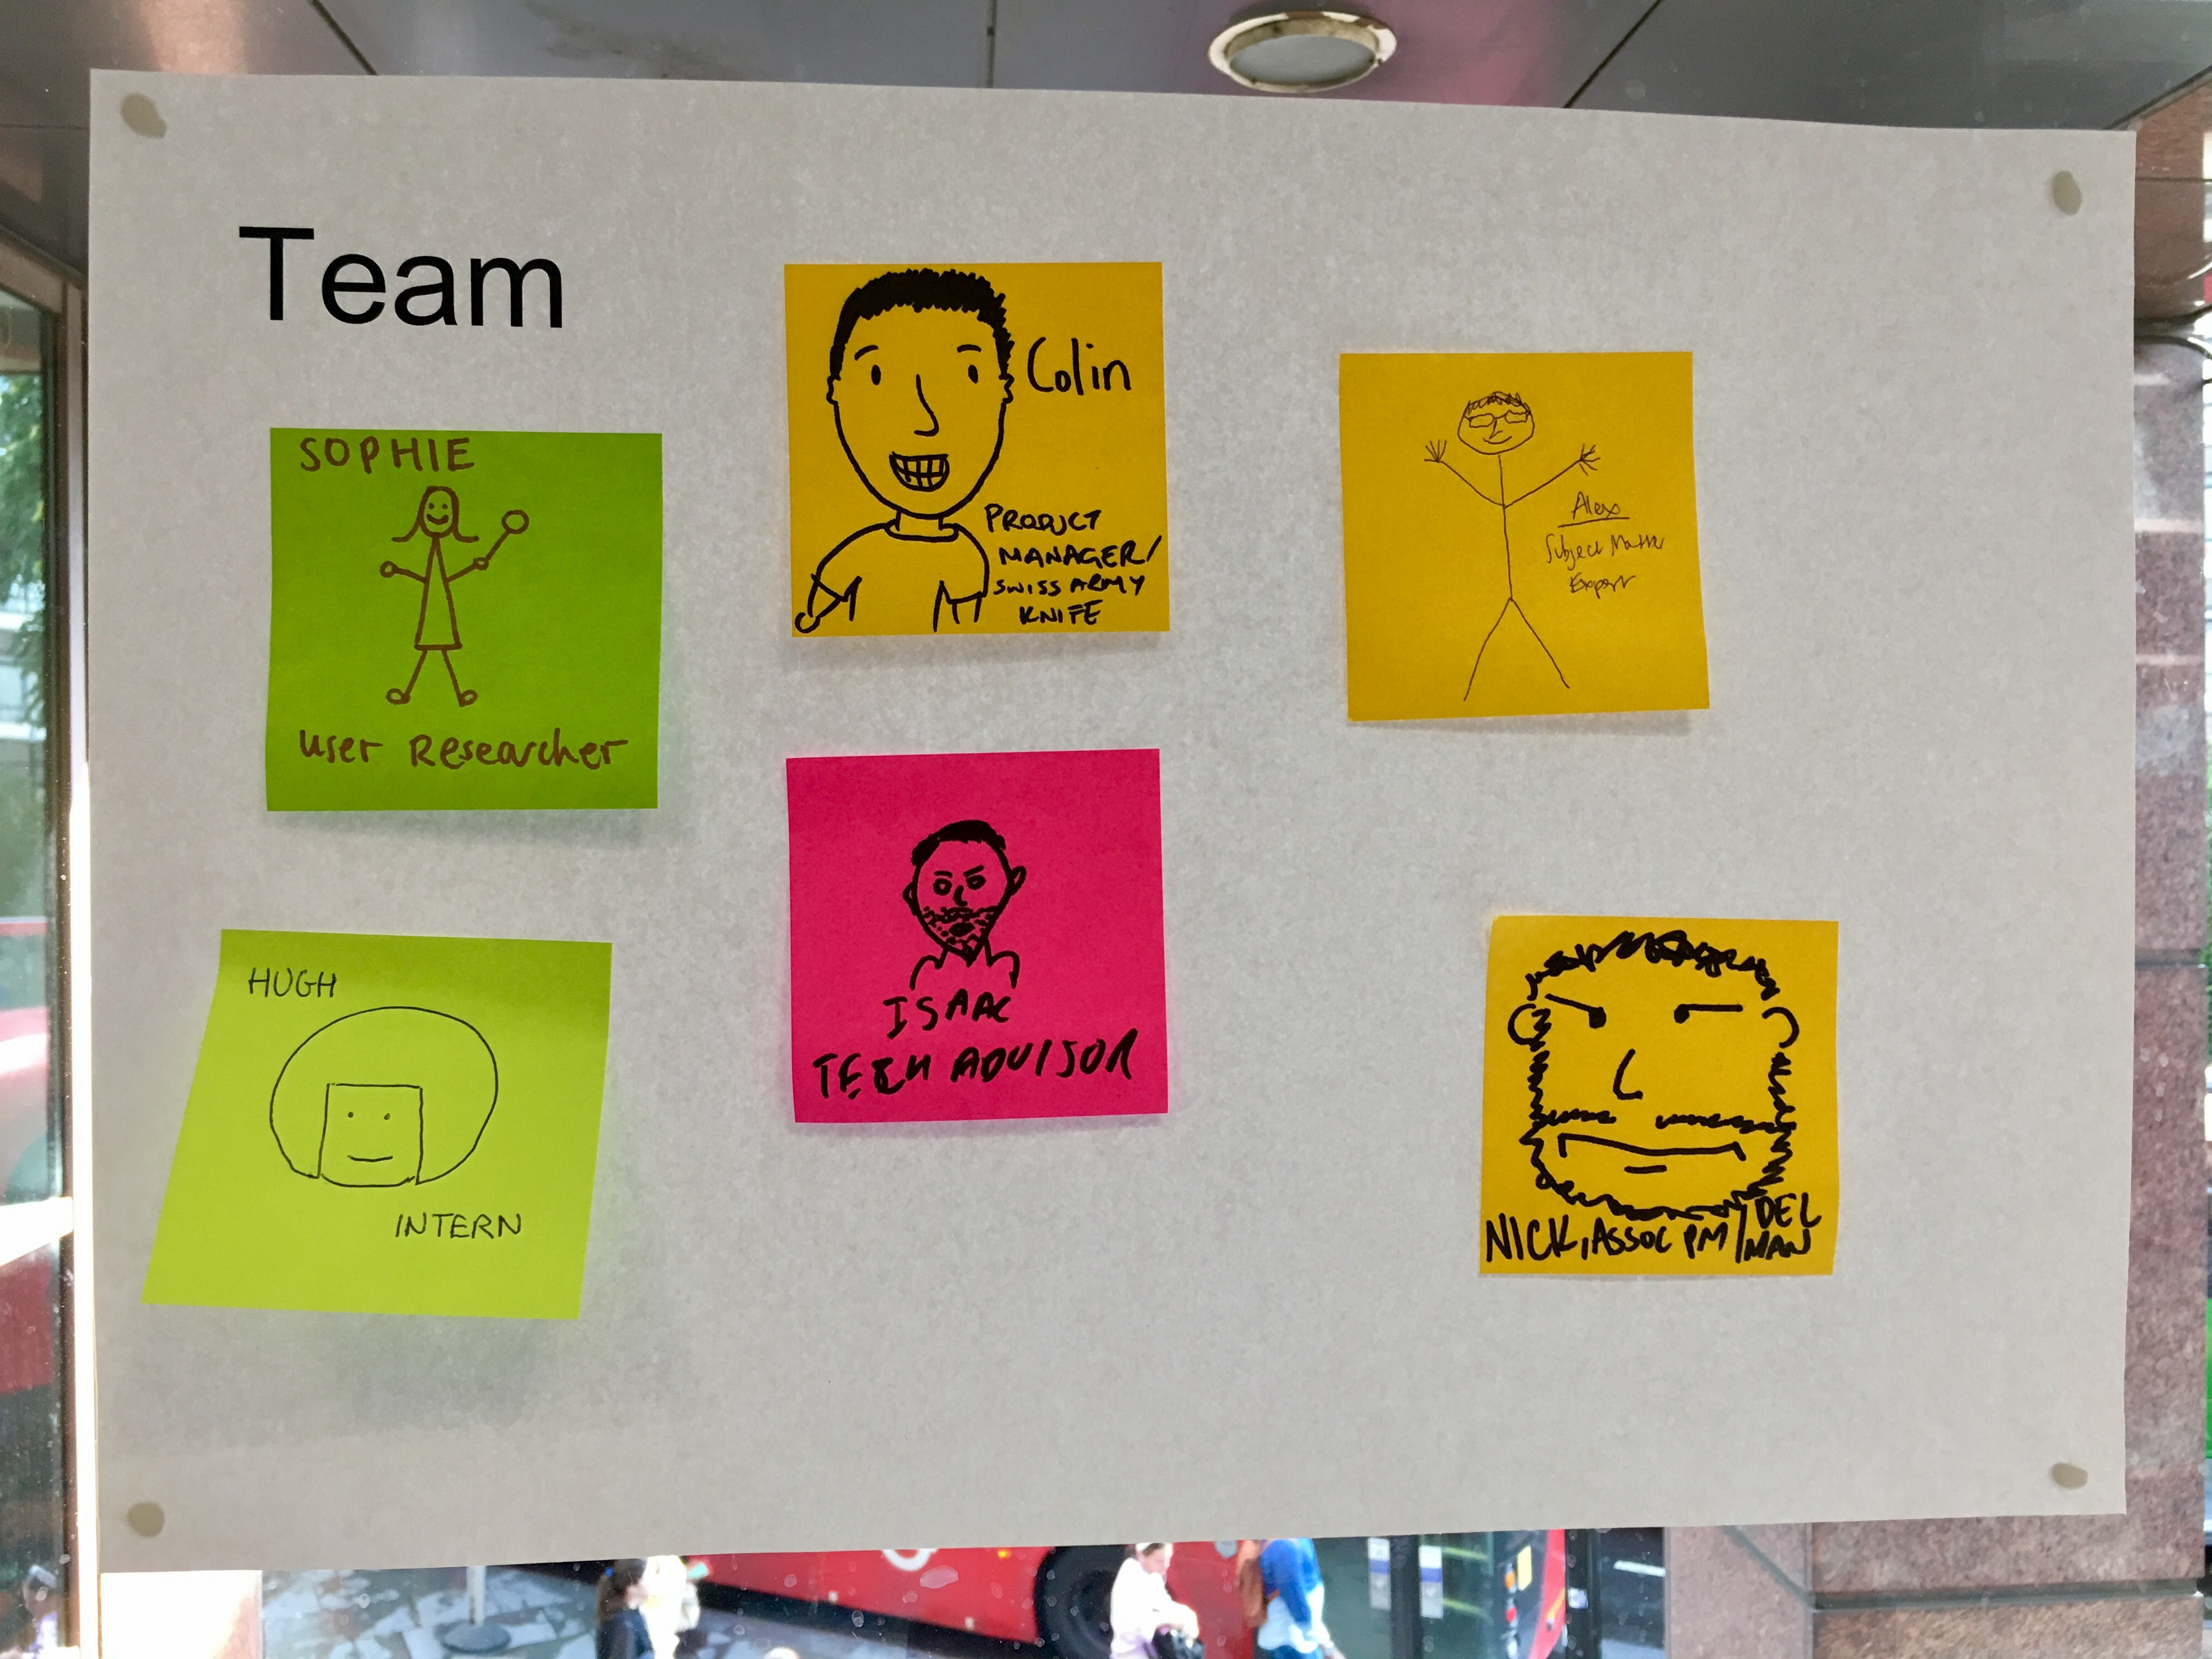 Team members drew themselves at inception day and this displays post-its with drawings of Sophie, Colin, Alex, Isaac, Hugh & Nick but missing James